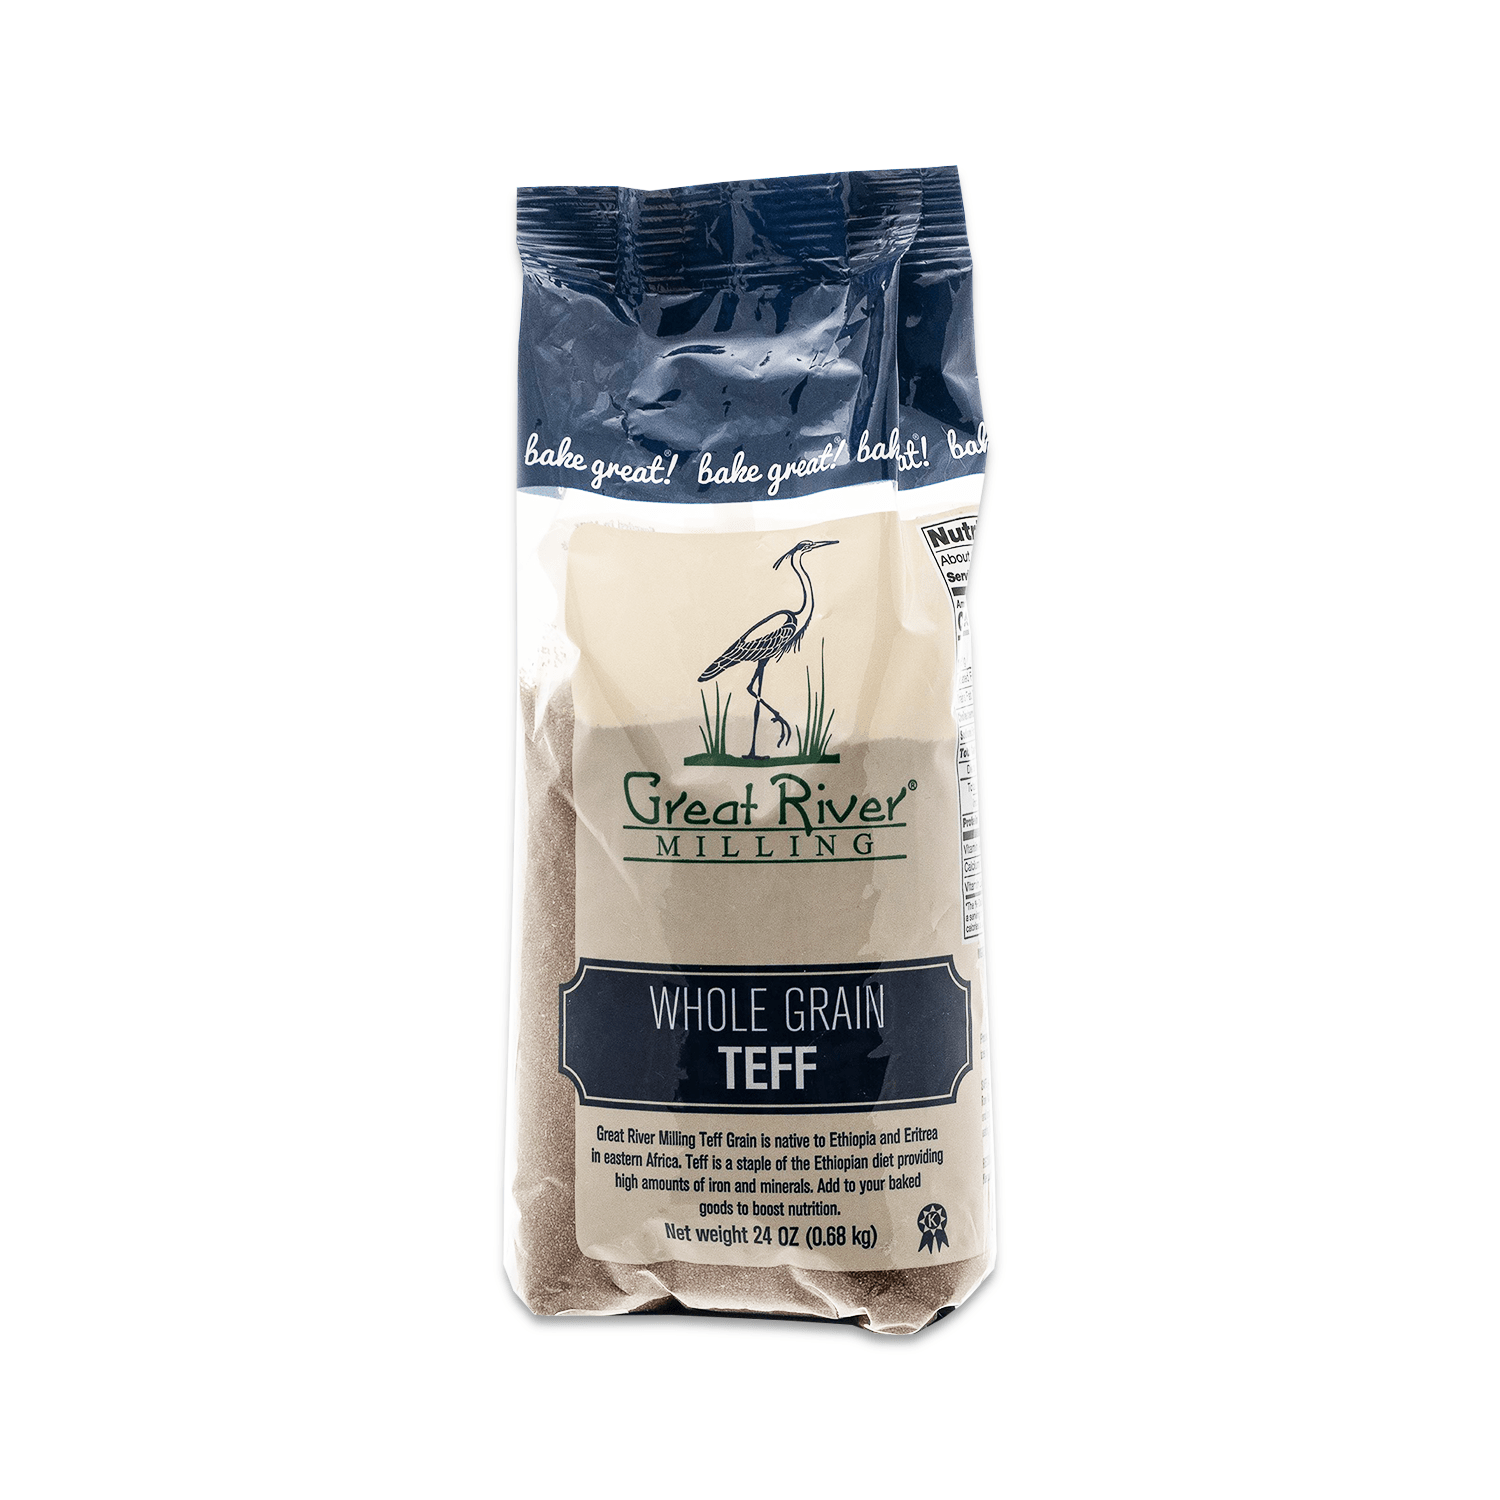 Great River Milling Whole Grain Teff